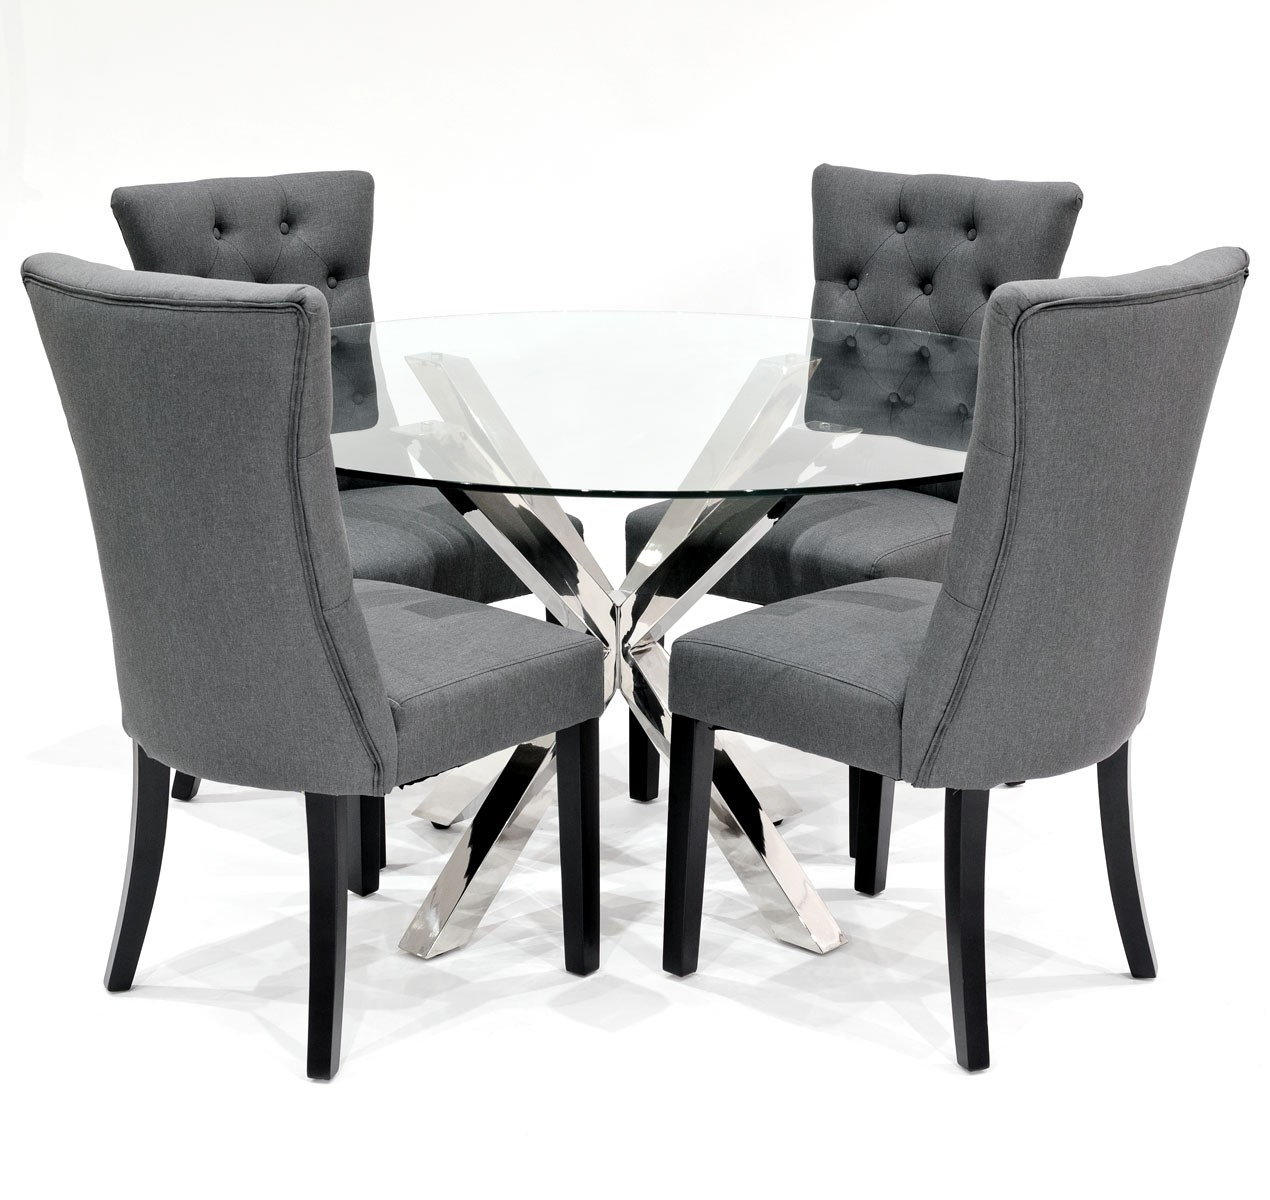 Widely Used Grey Dining Chairs In Crossly Dining Table And Sanderson Grey Dining Chair Set – Be Fabulous! (#18 of 20)